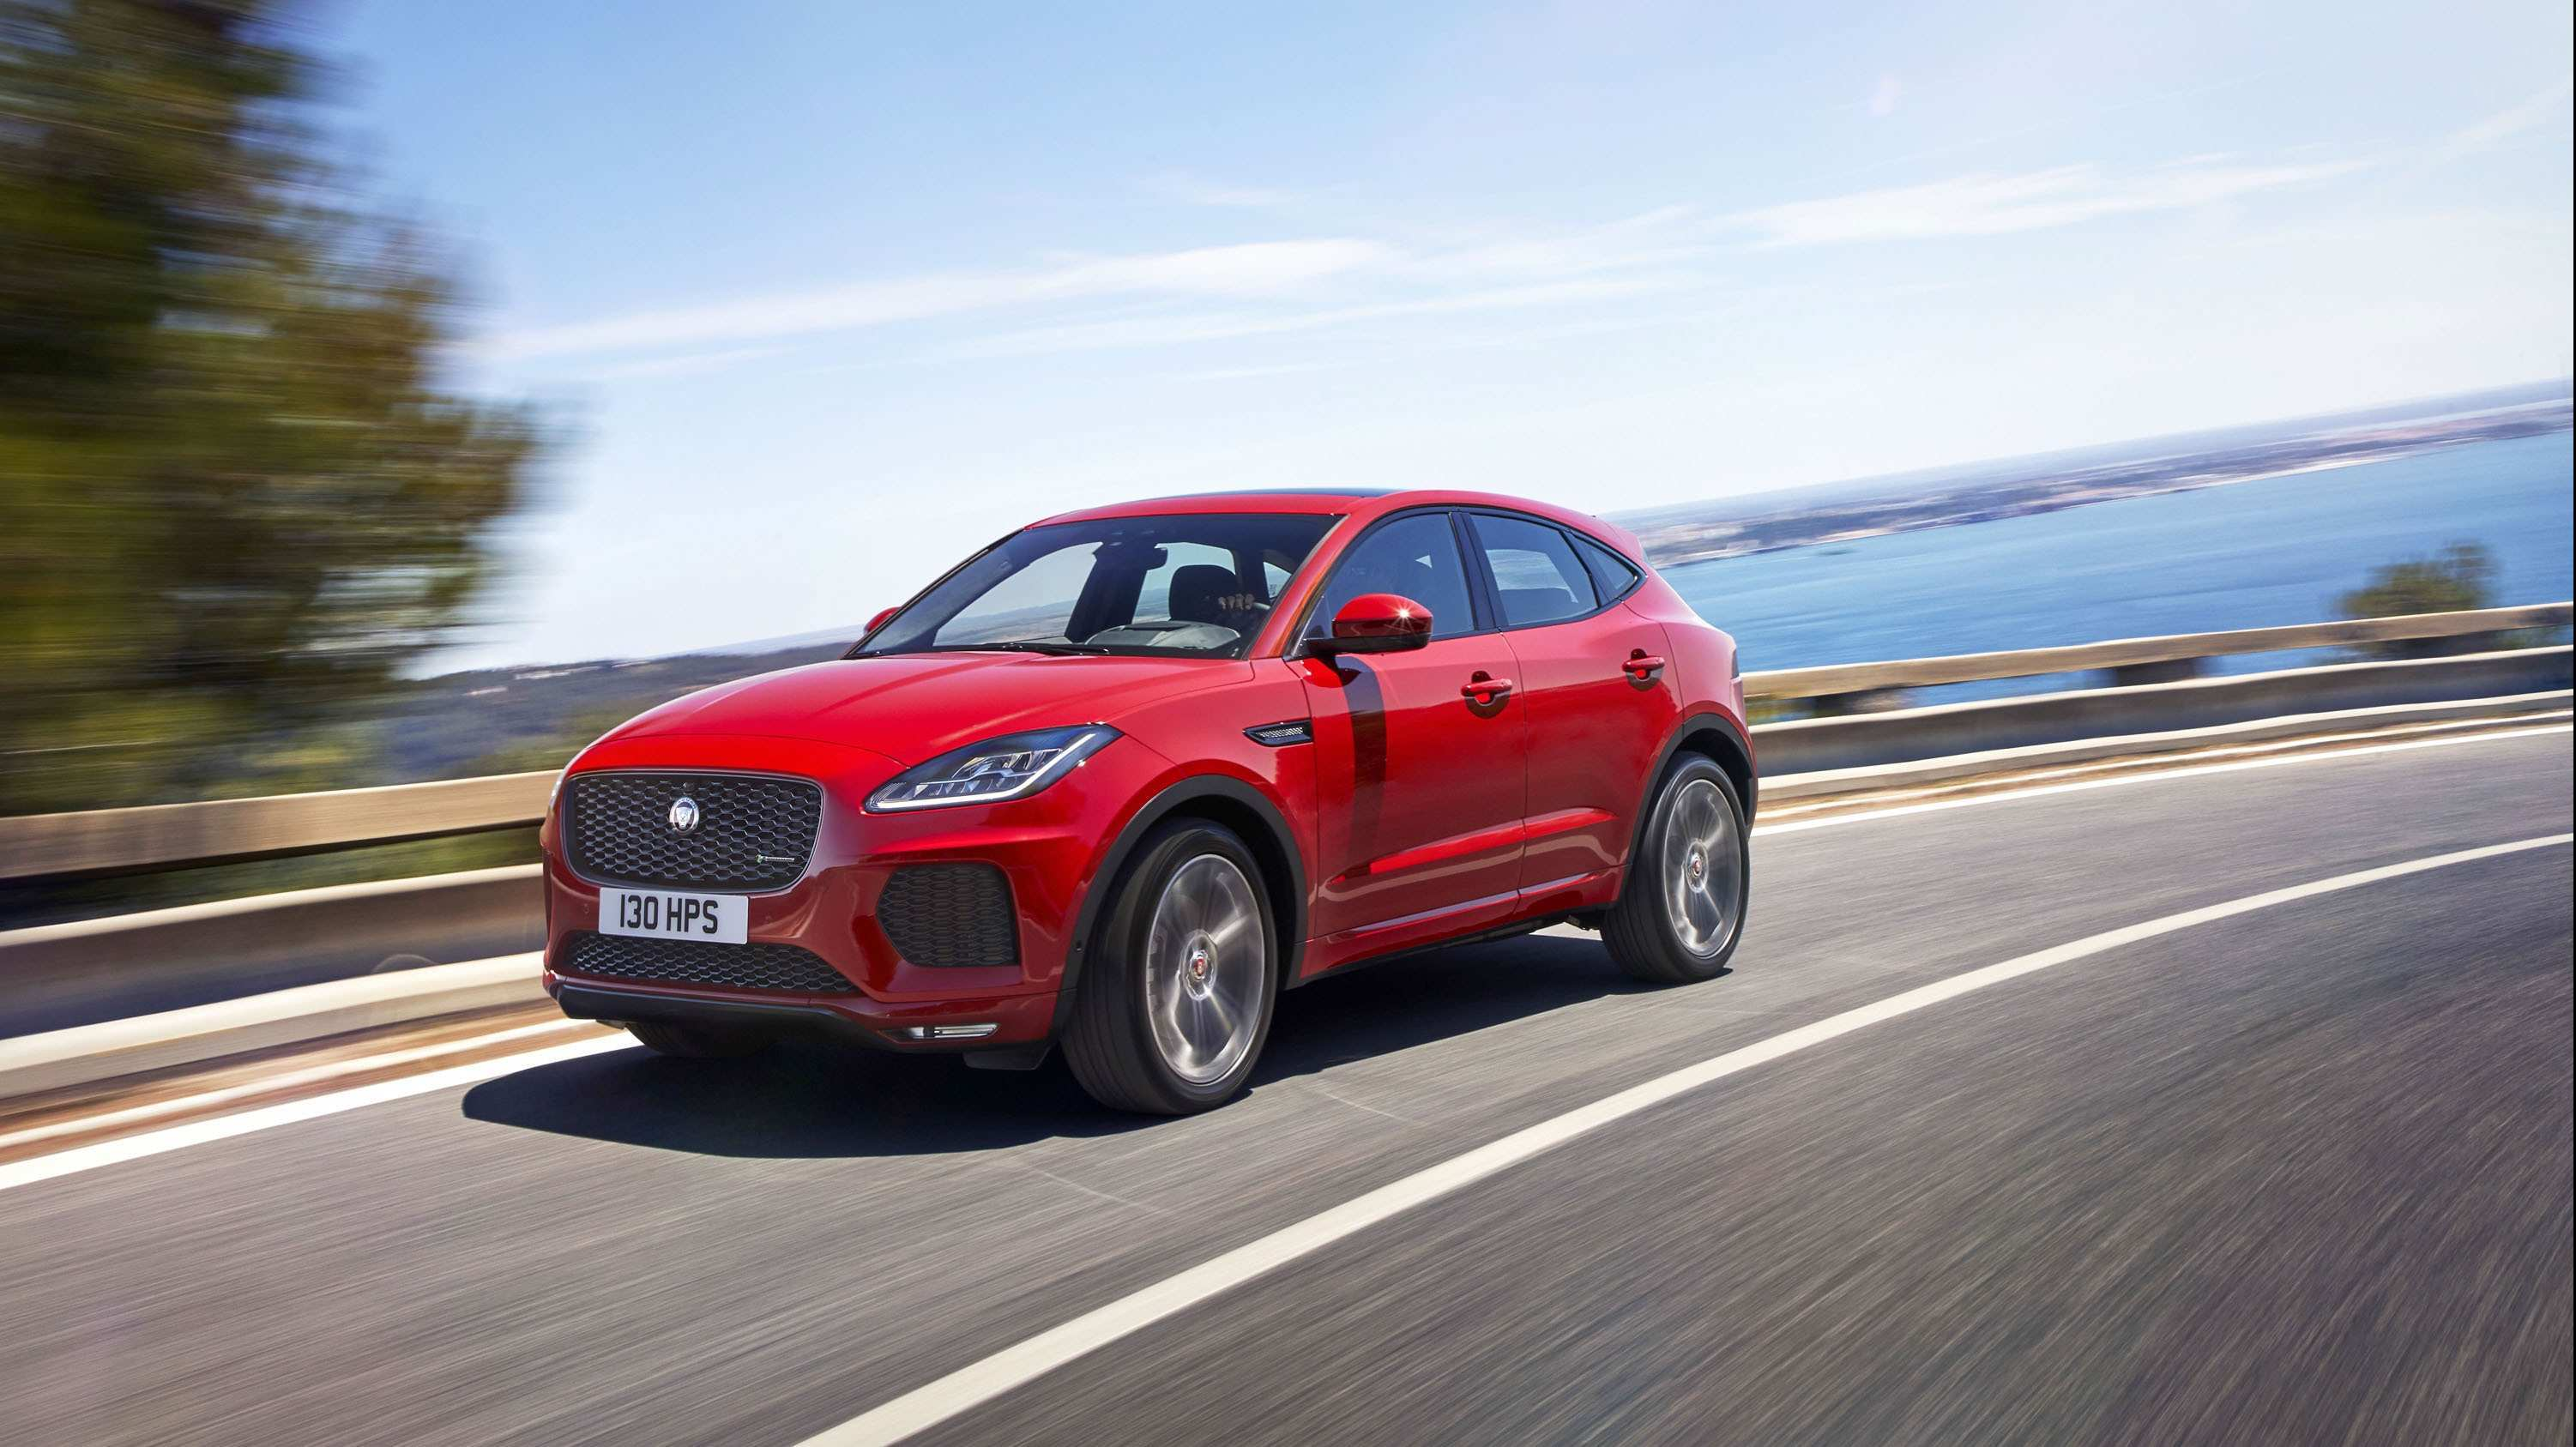 69 Best Review 2020 Jaguar Xq Crossover Concept with 2020 Jaguar Xq Crossover